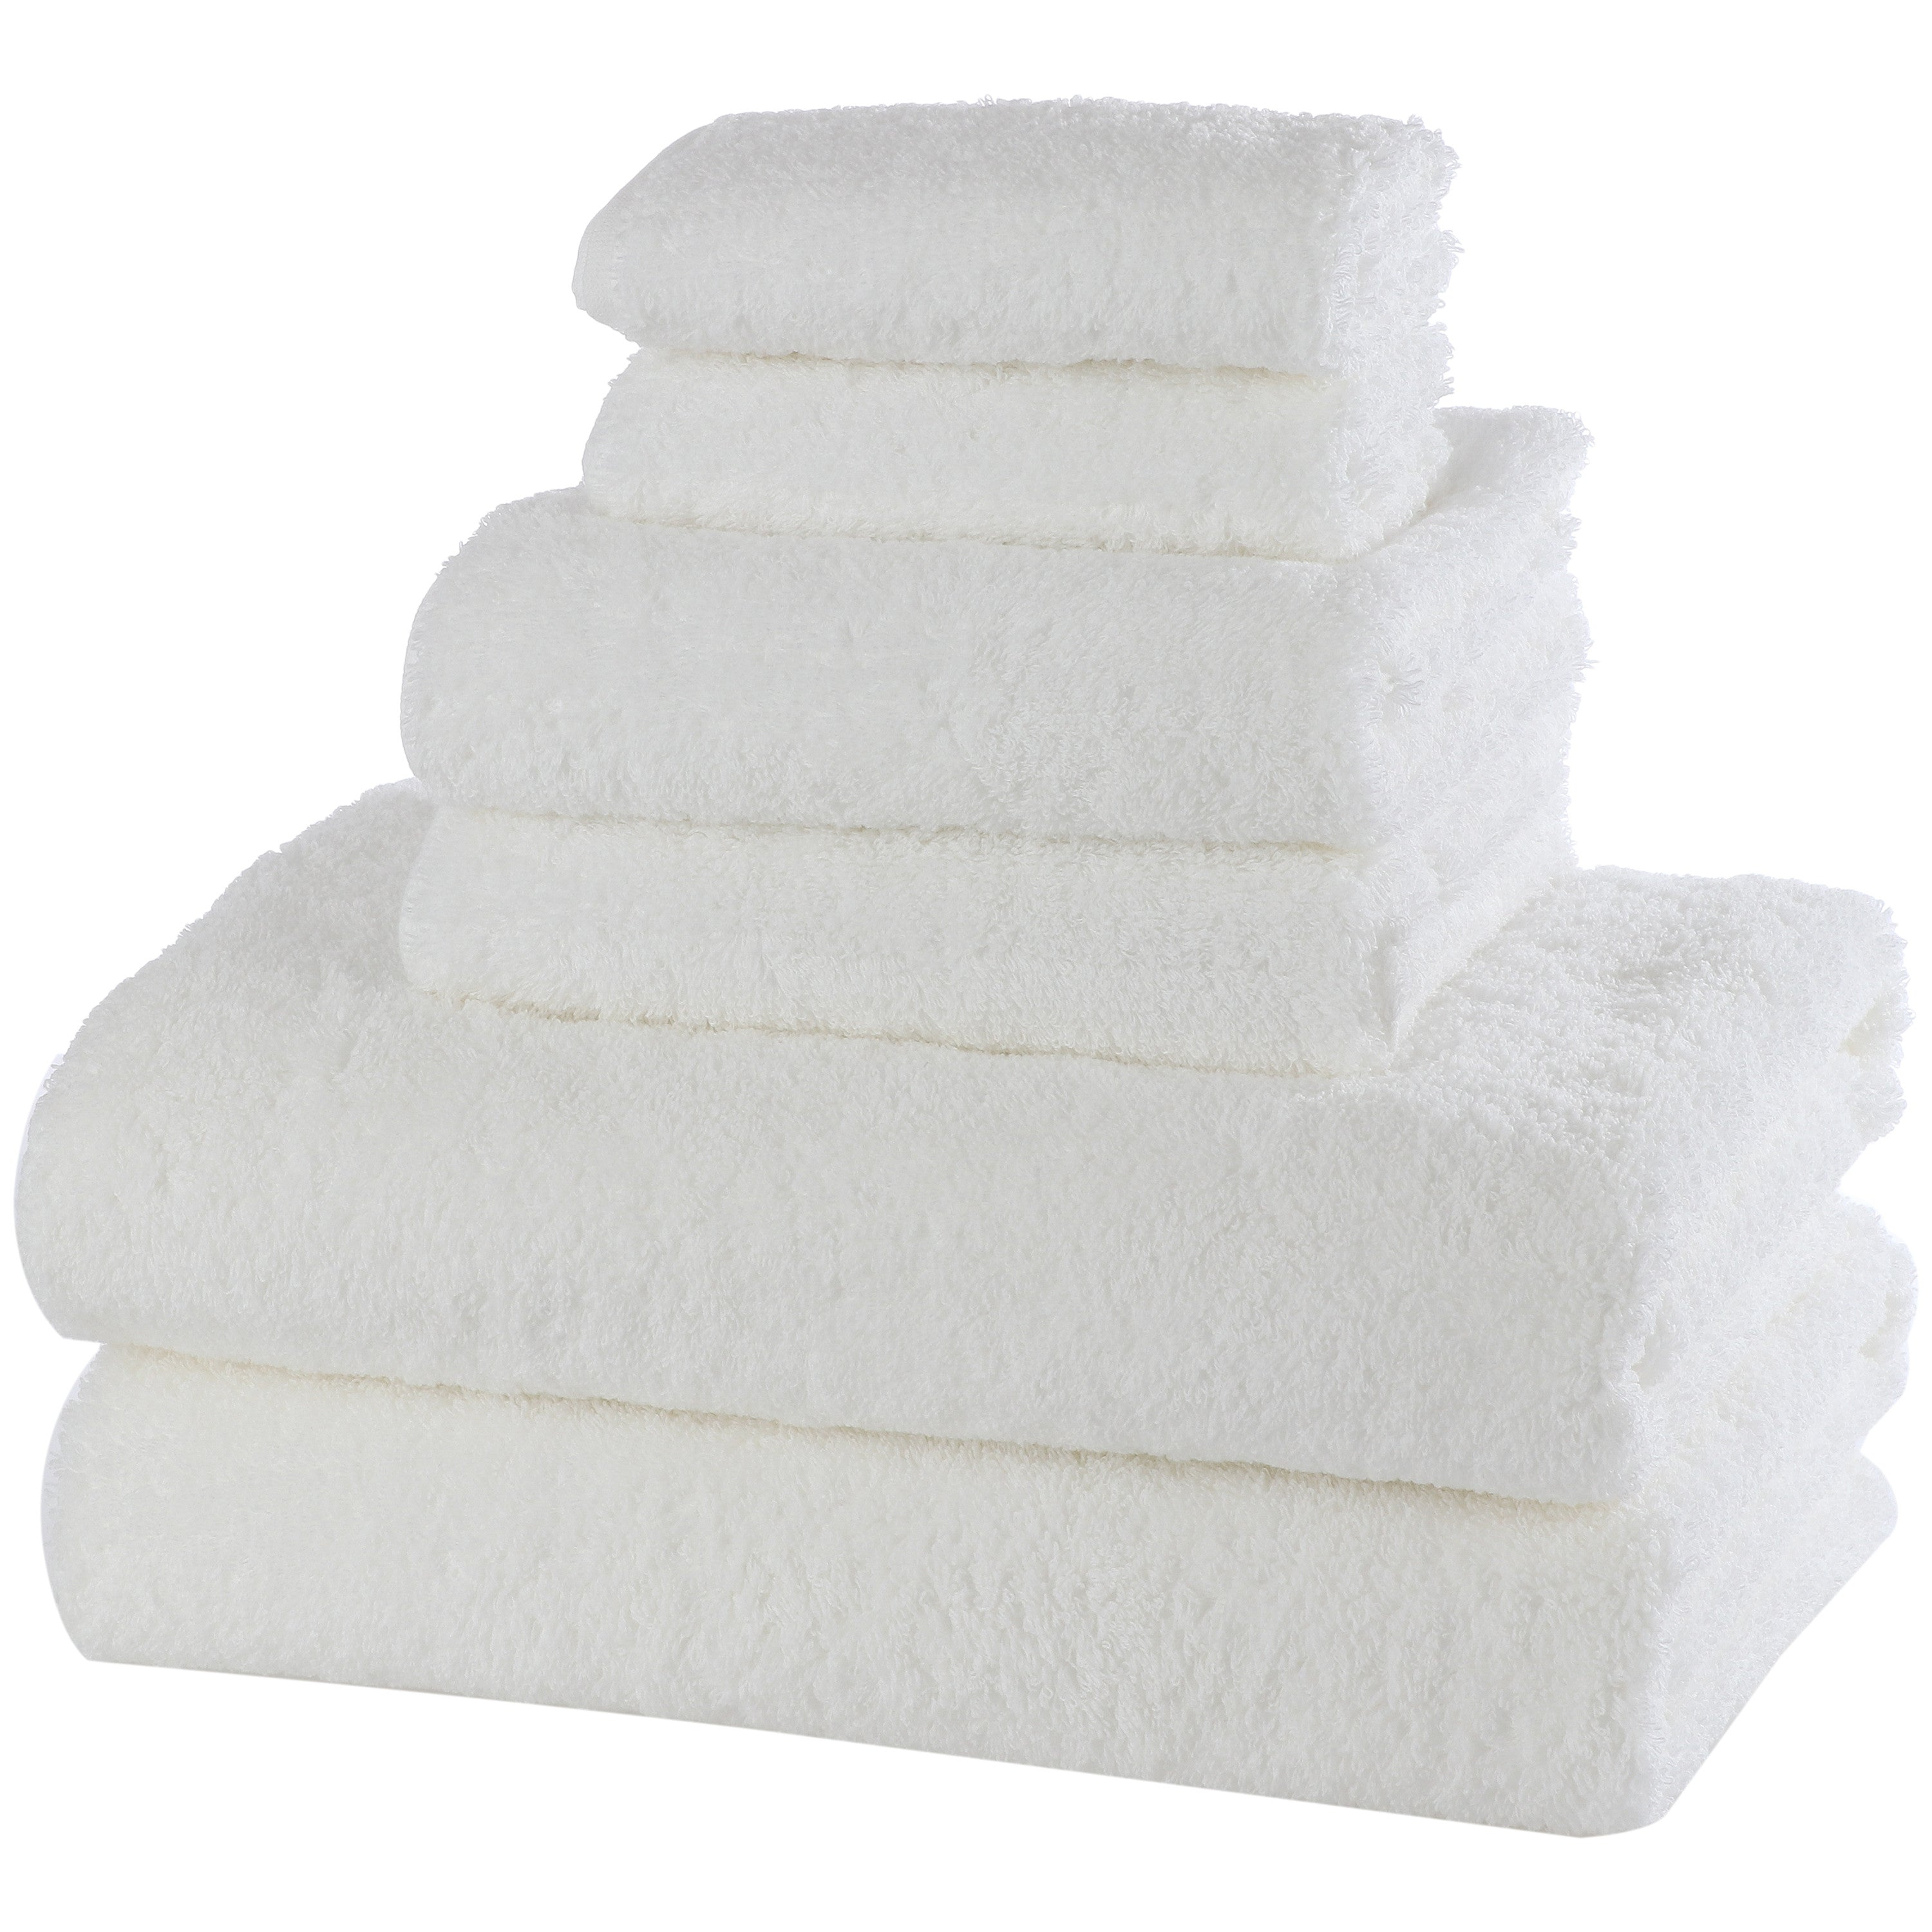 Free Shipping | Egyptian Cotton Towel Set | Caribbean Natural on organic cotton towels, white tea towels, eco cotton towels, whitecotton dish towels, disposable cotton towels, white hand towels, peri cotton towels, high quality cotton towels, 100% cotton towels, white face towels, white linen towels, black towels, silver towels, white monogrammed towels, white towel sets, white hotel towel, white terry towel, white beach towels, egyptian cotton towels, white bath towels,